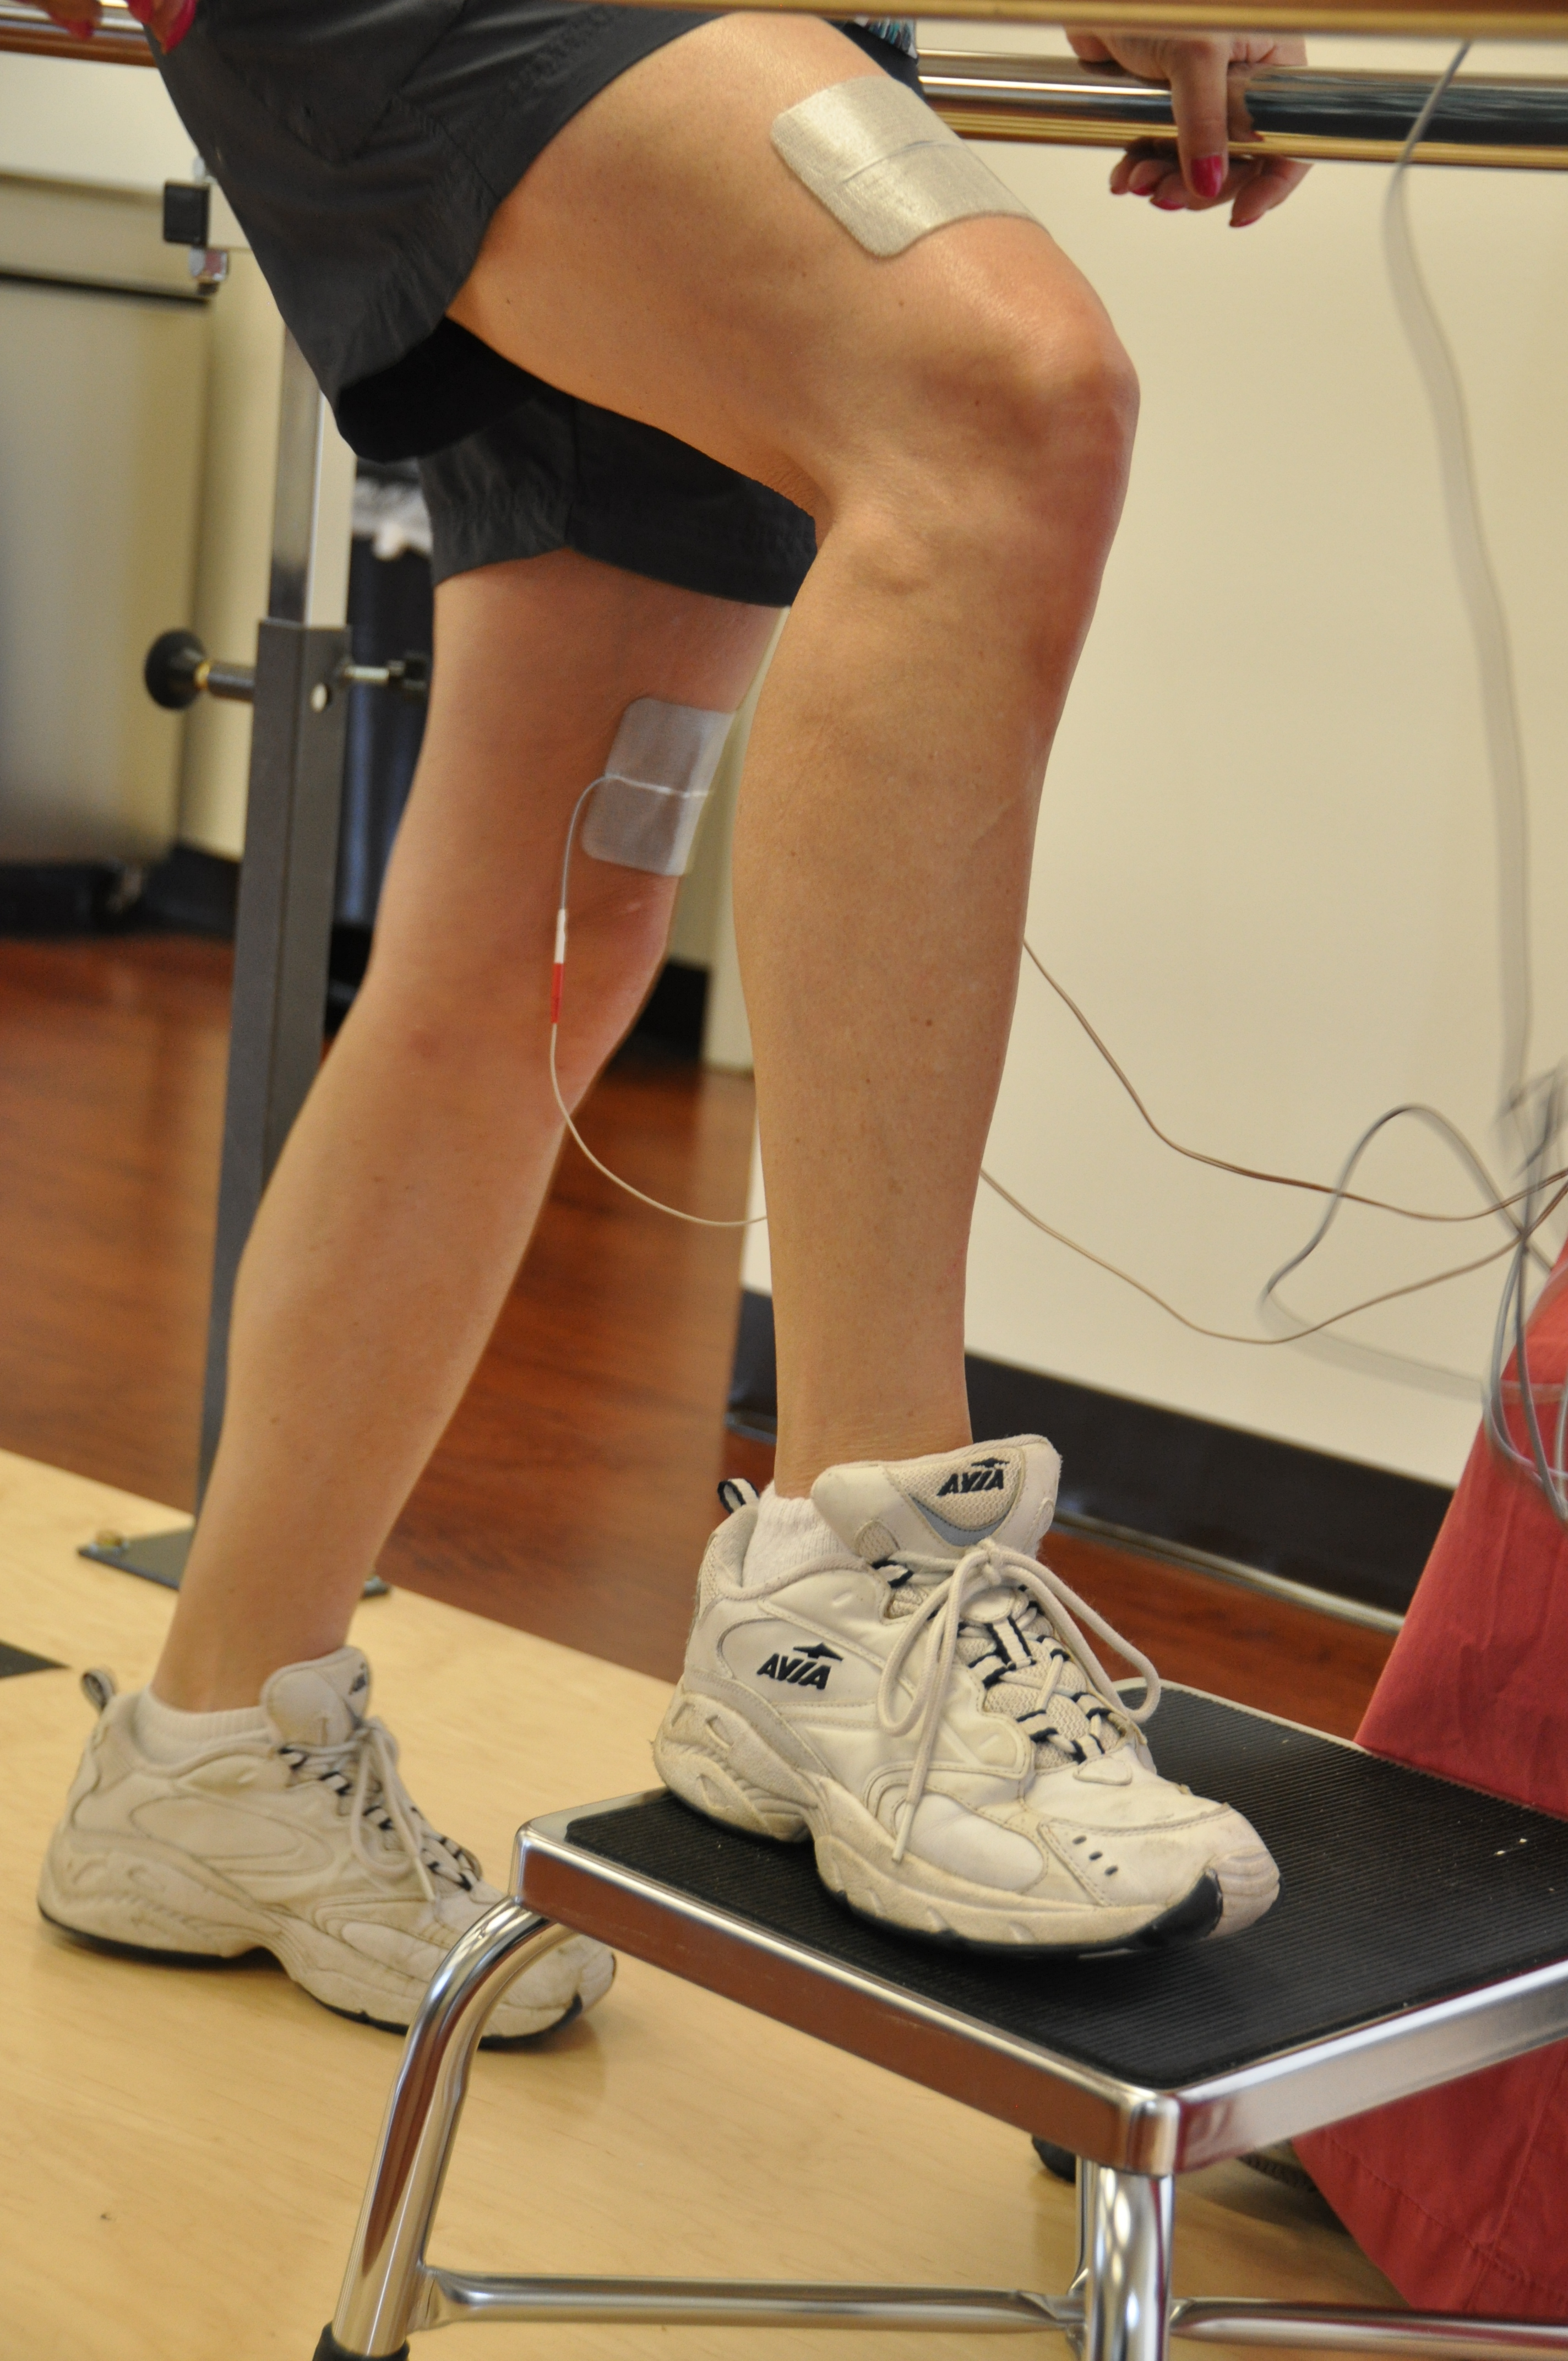 Functional electrical stimulation assisted stepping